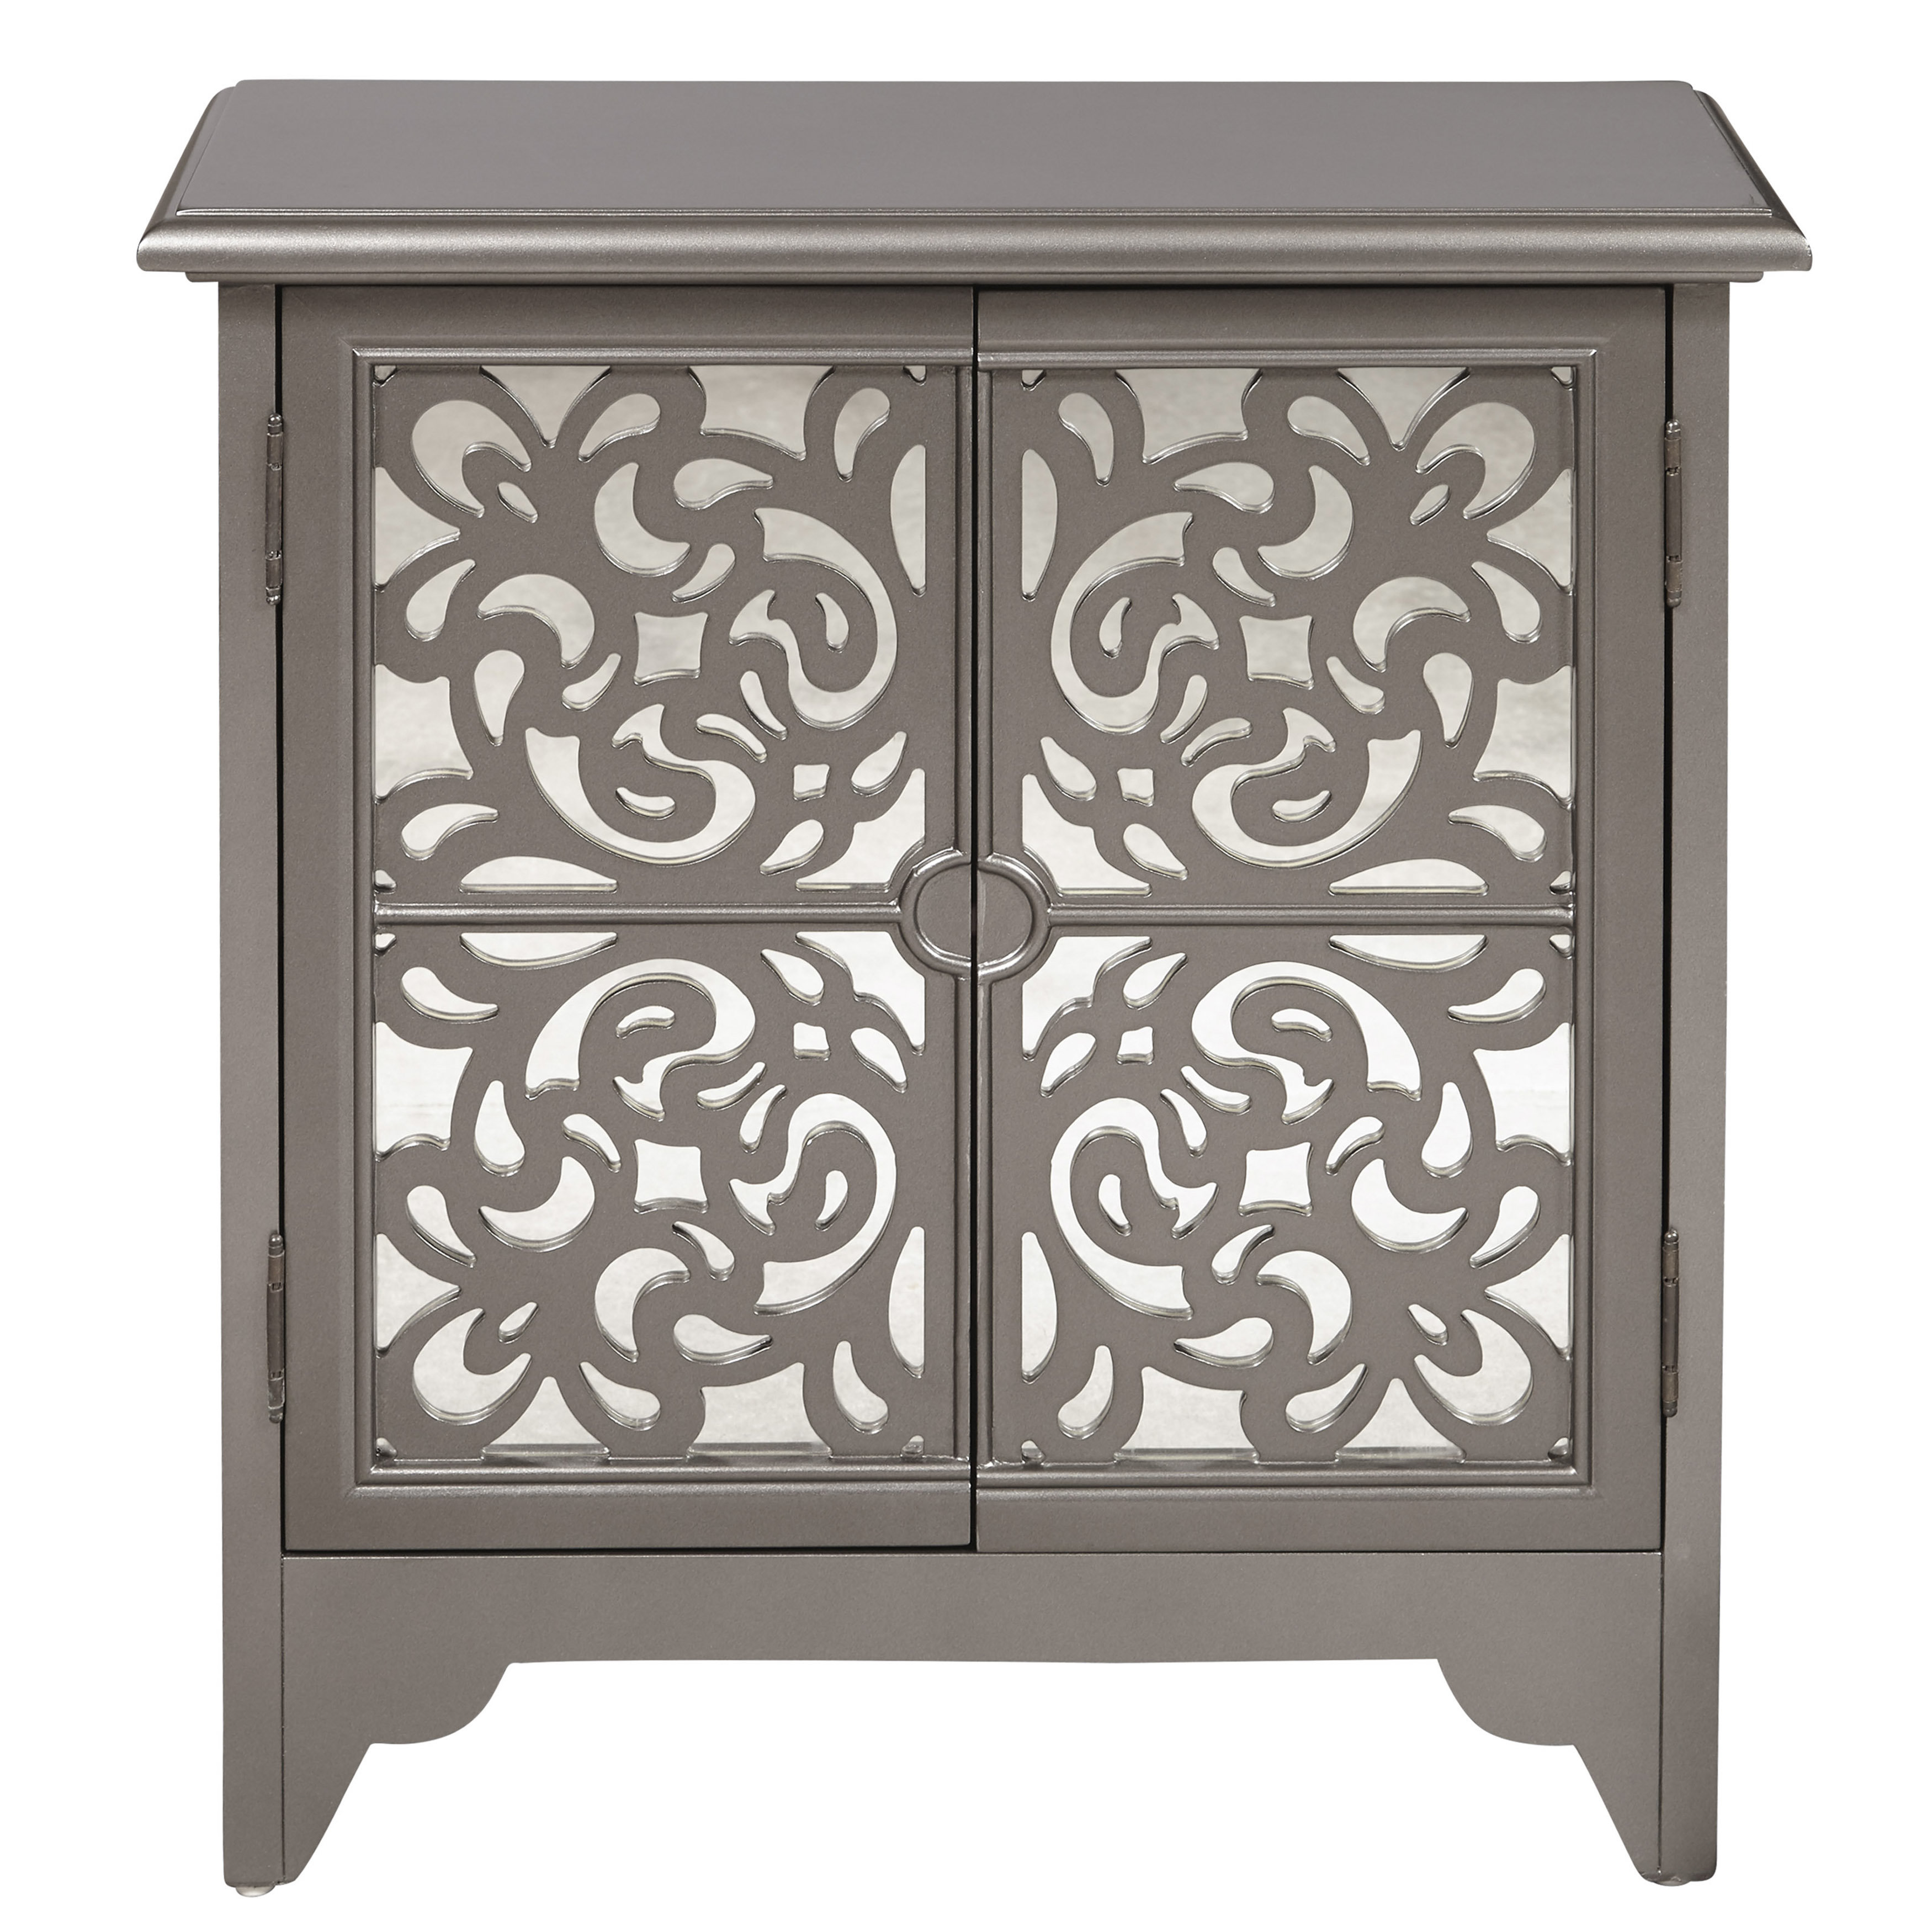 house hampton brinley drawer accent chest birch lane brocklesby mirrored overlay door don table clear kitchen placemats foyer lamps bedroom cast aluminum patio end tables